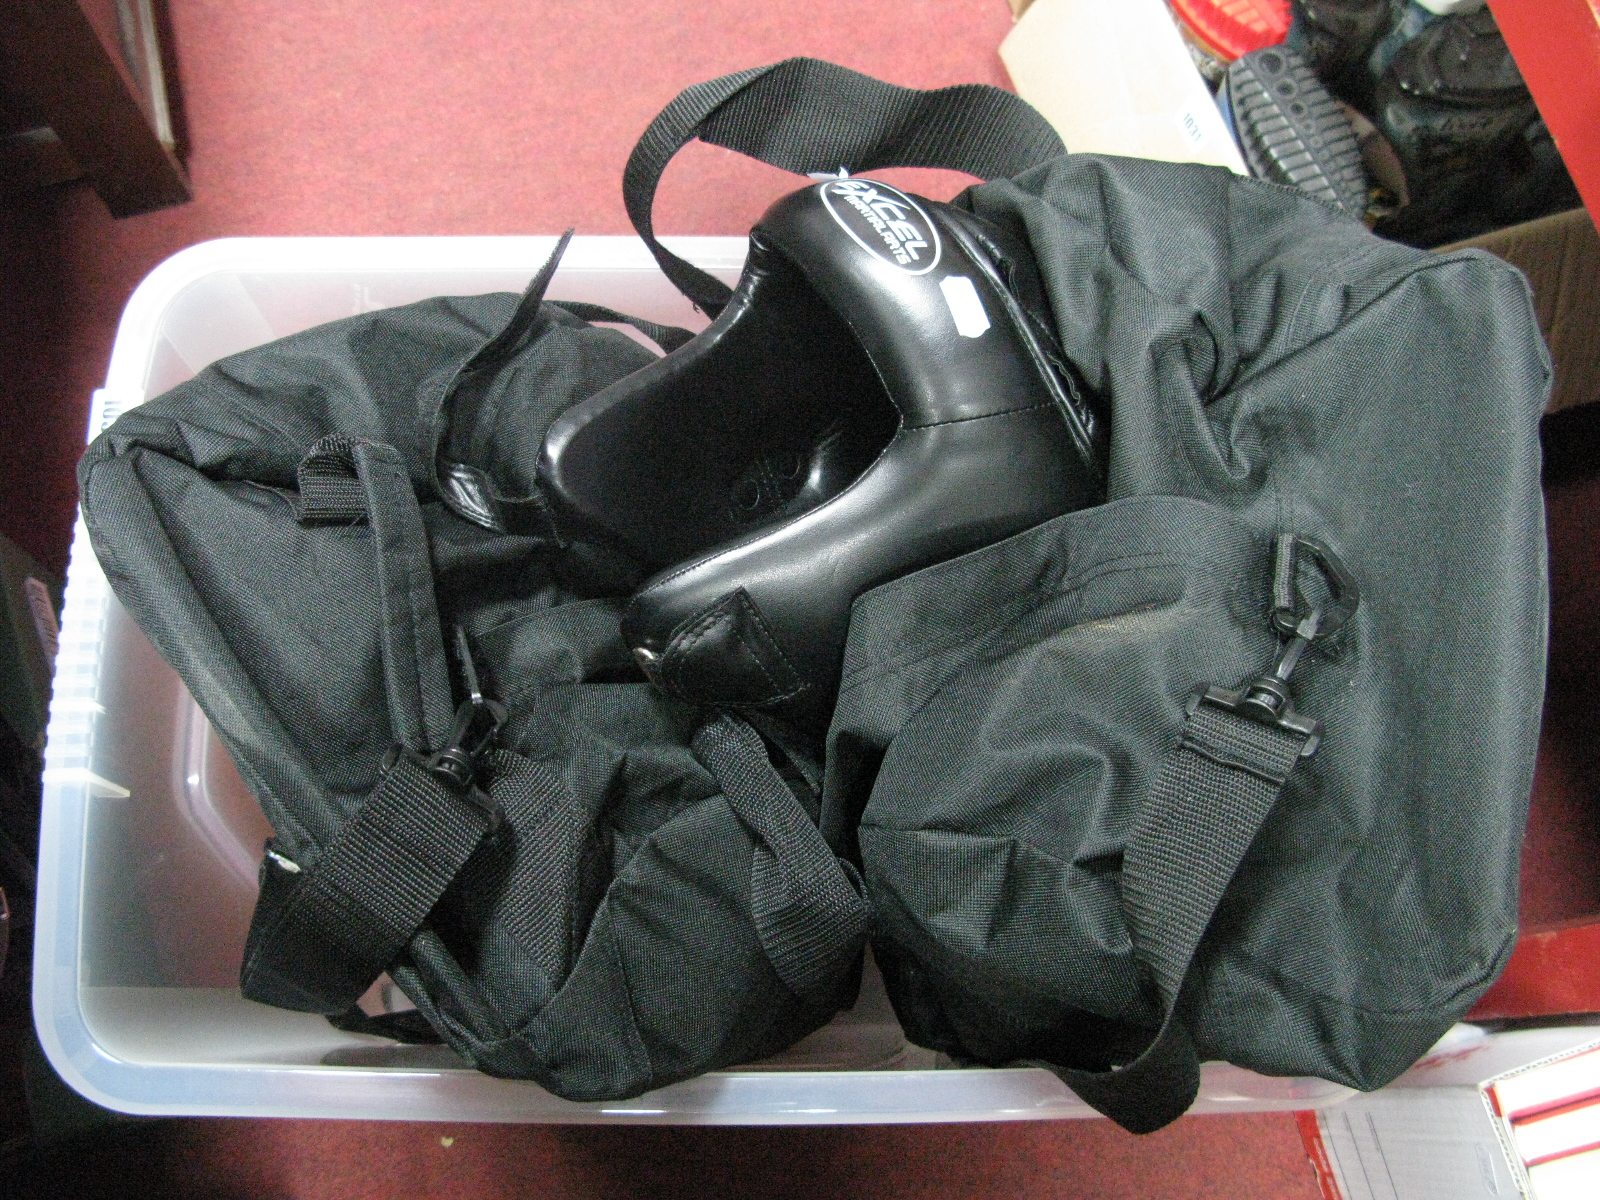 Lot 1032 - Two Soft Protective Cases of Excel Martial Arts Protection Accessories - head guards, mouth shields,